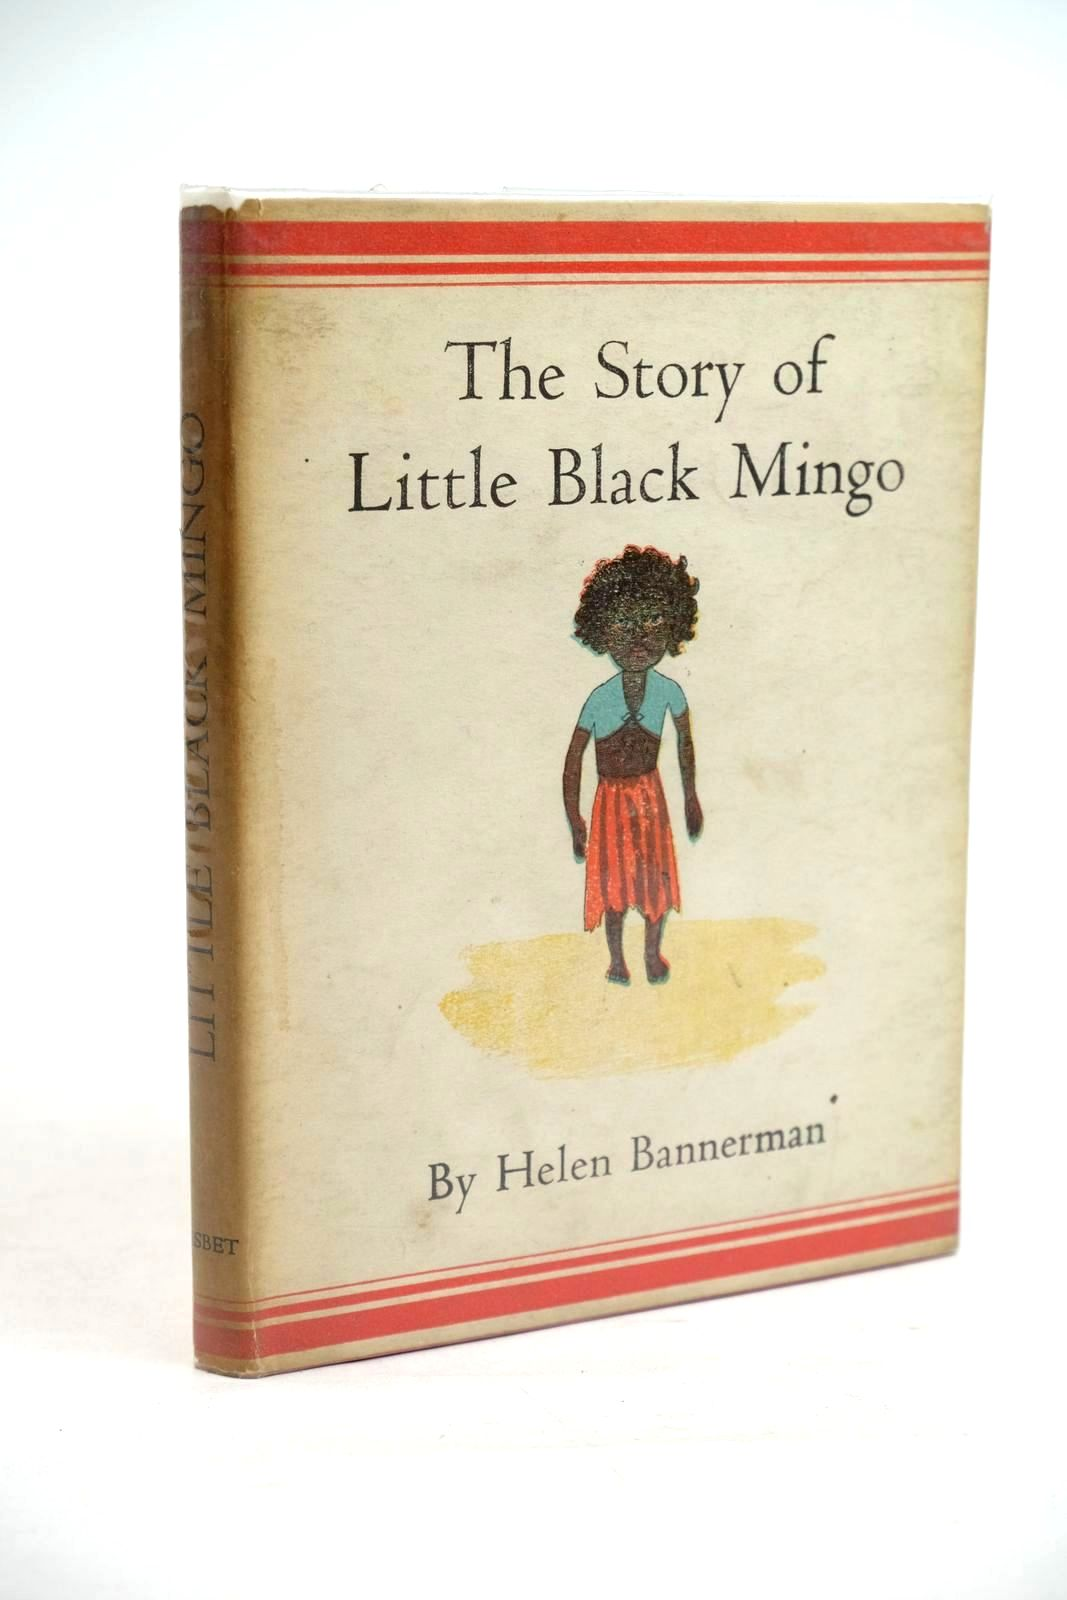 Photo of THE STORY OF LITTLE BLACK MINGO written by Bannerman, Helen illustrated by Bannerman, Helen published by Nisbet & Co. Ltd. (STOCK CODE: 1320378)  for sale by Stella & Rose's Books